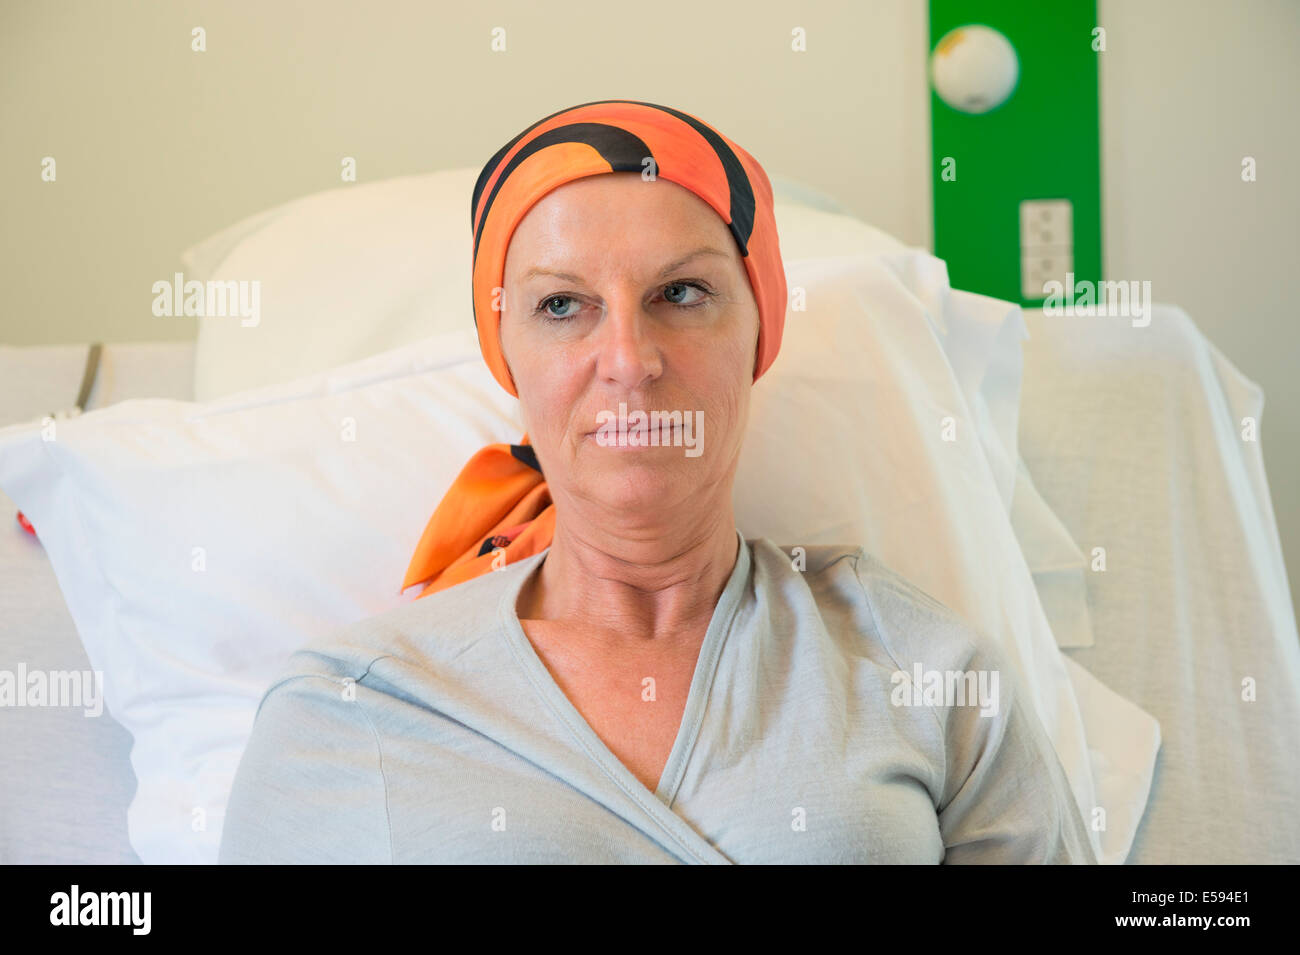 Patient receiving out-patient chemotherapy treatment - Stock Image